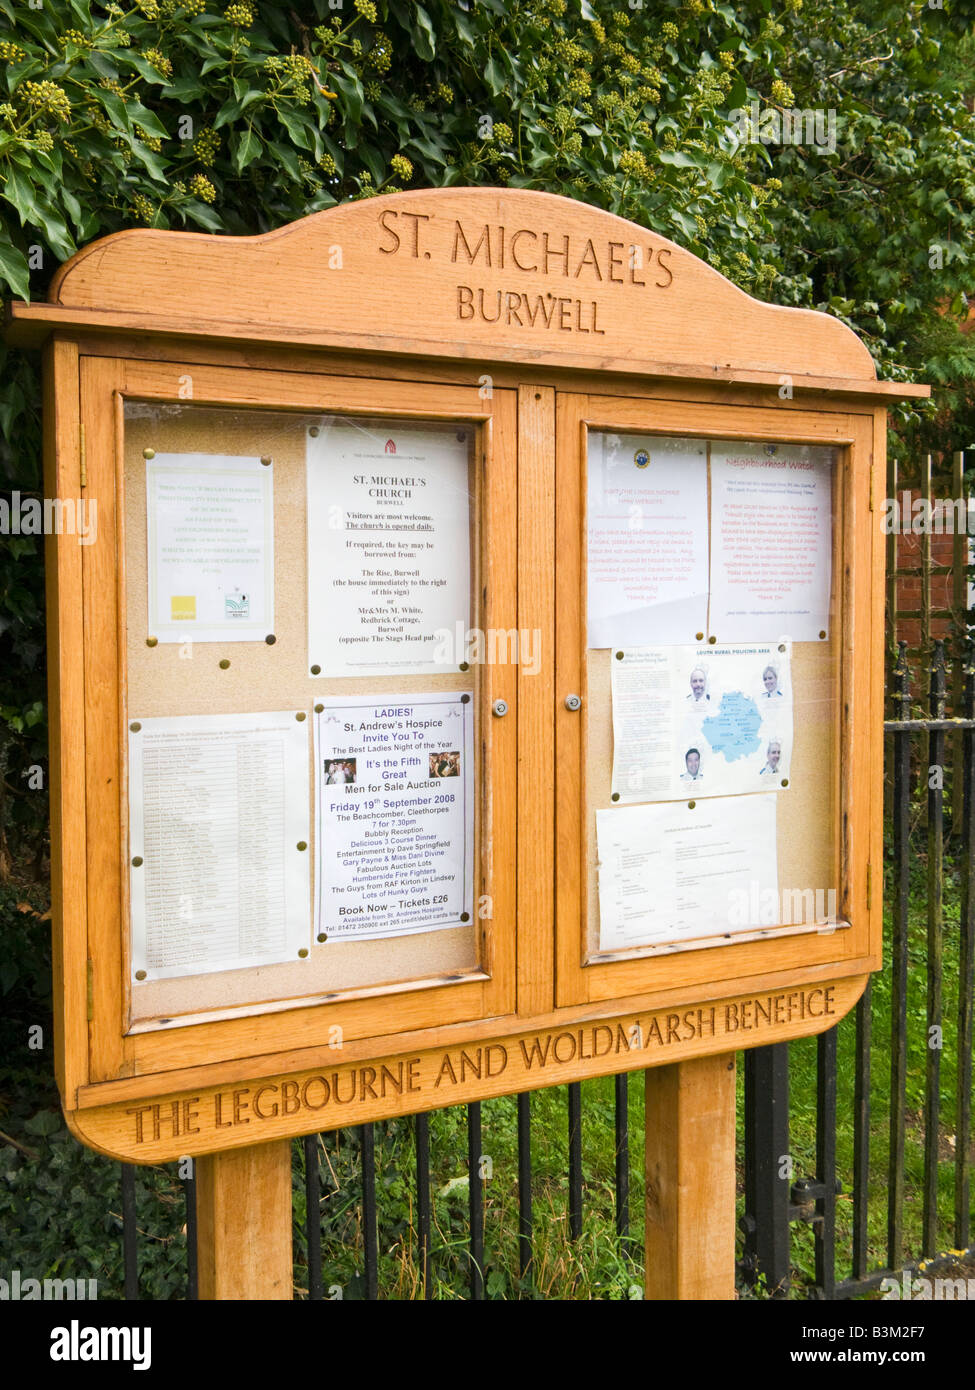 Wooden parish church notice board with community information - Stock Image